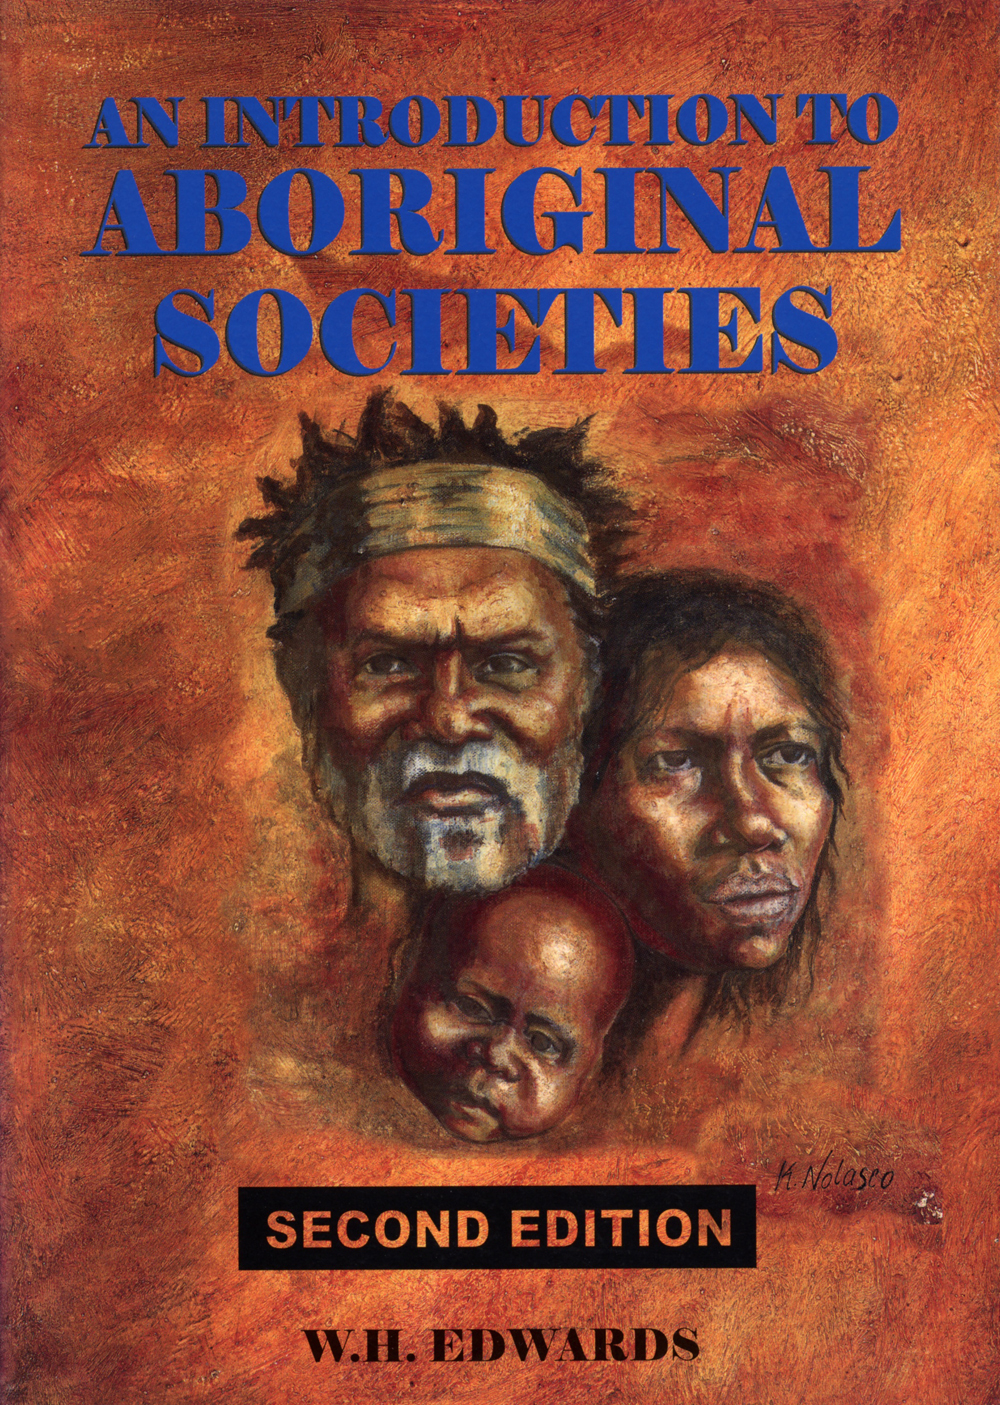 An Introduction to Aboriginal Society - 9780170177603